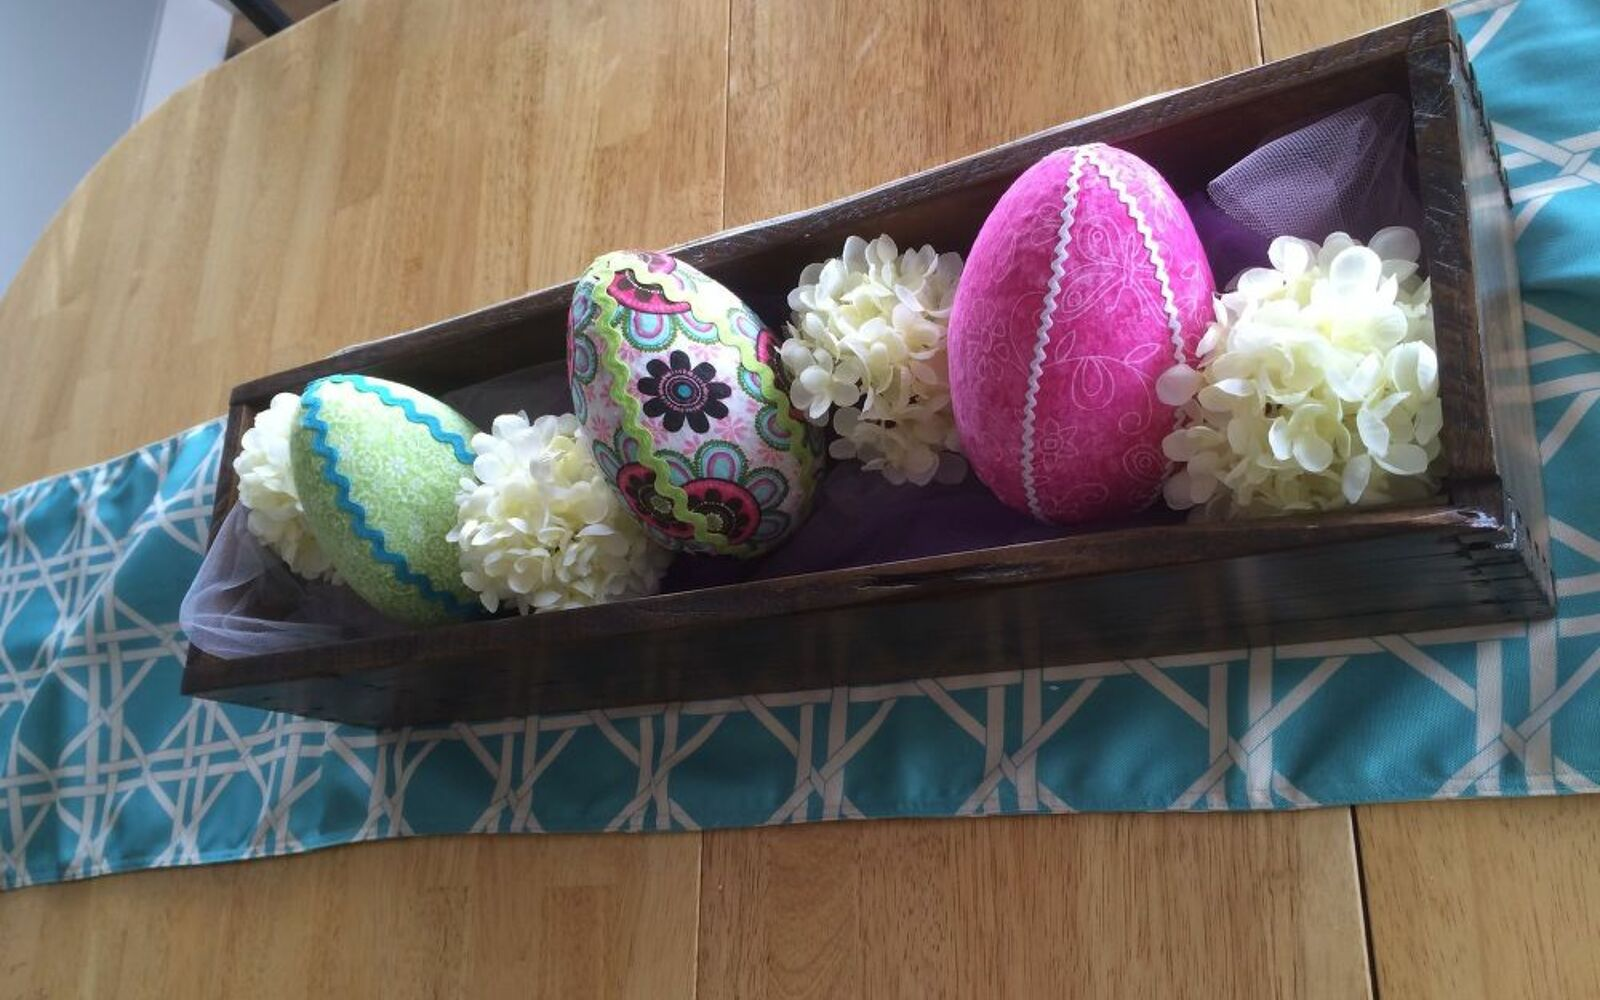 s 25 quick easter egg ideas that are just too stinkin cute, crafts, easter decorations, Use fabric scraps as colorful covers